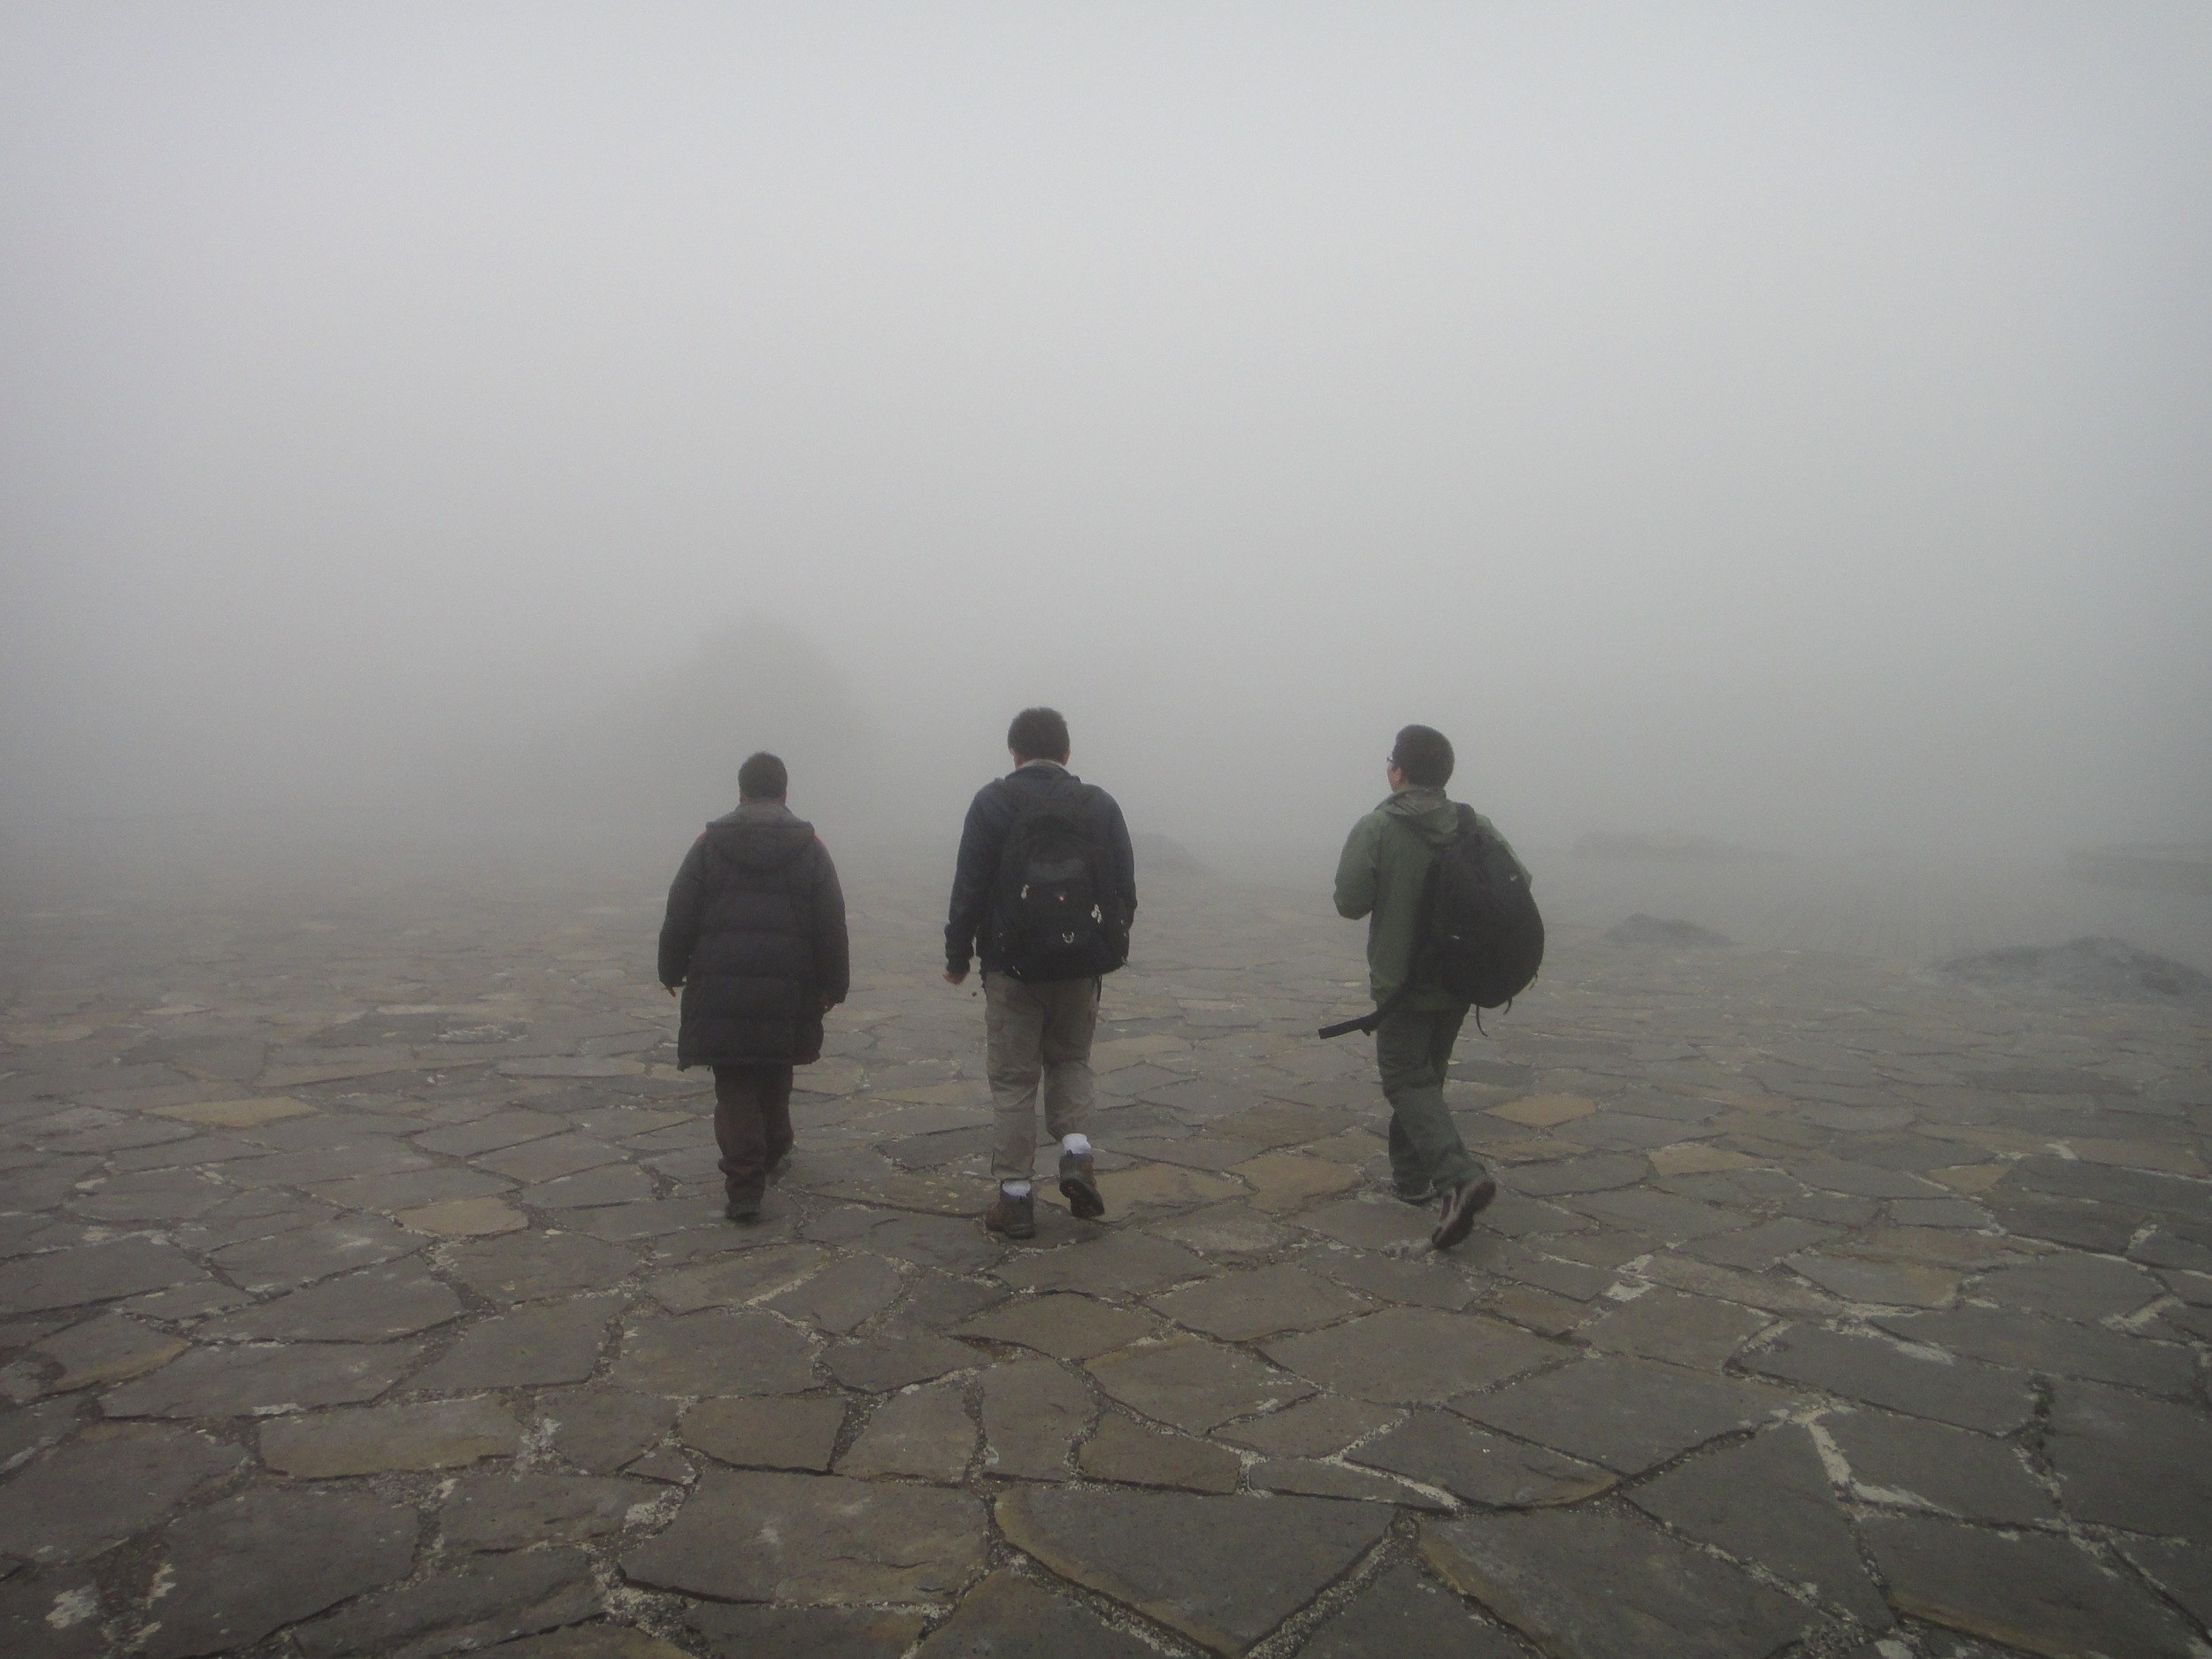 walking through the clouds on Mt. Jiaozi.